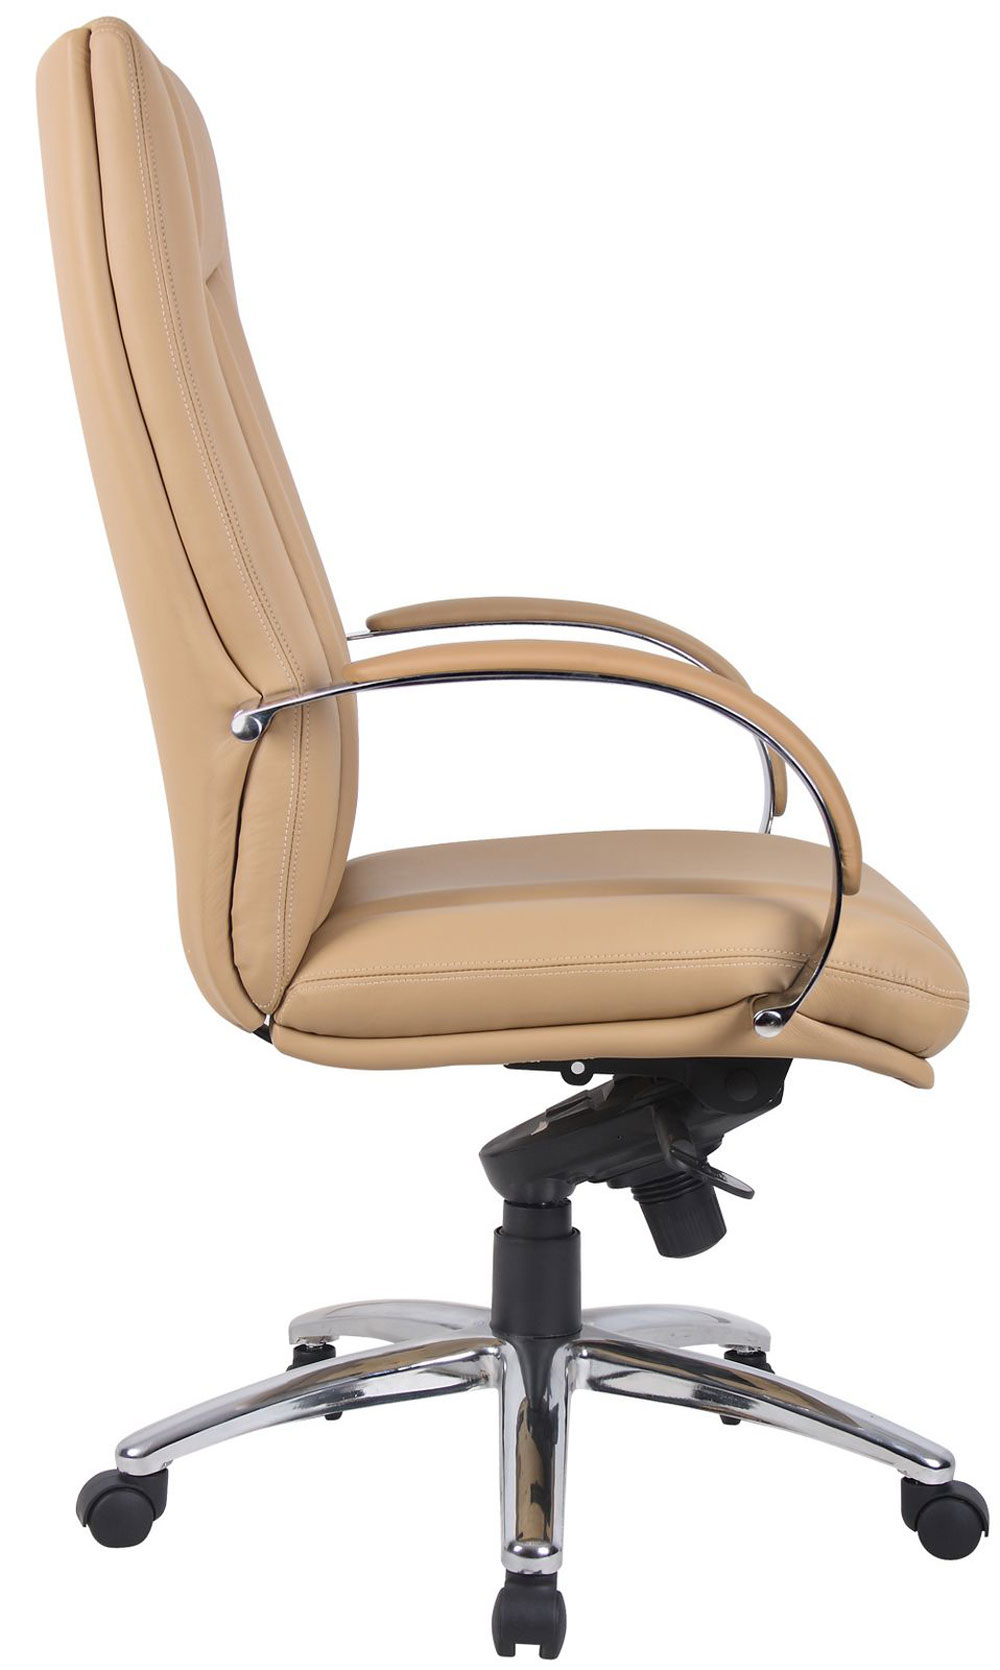 Brown Leather adjustable office chair executive